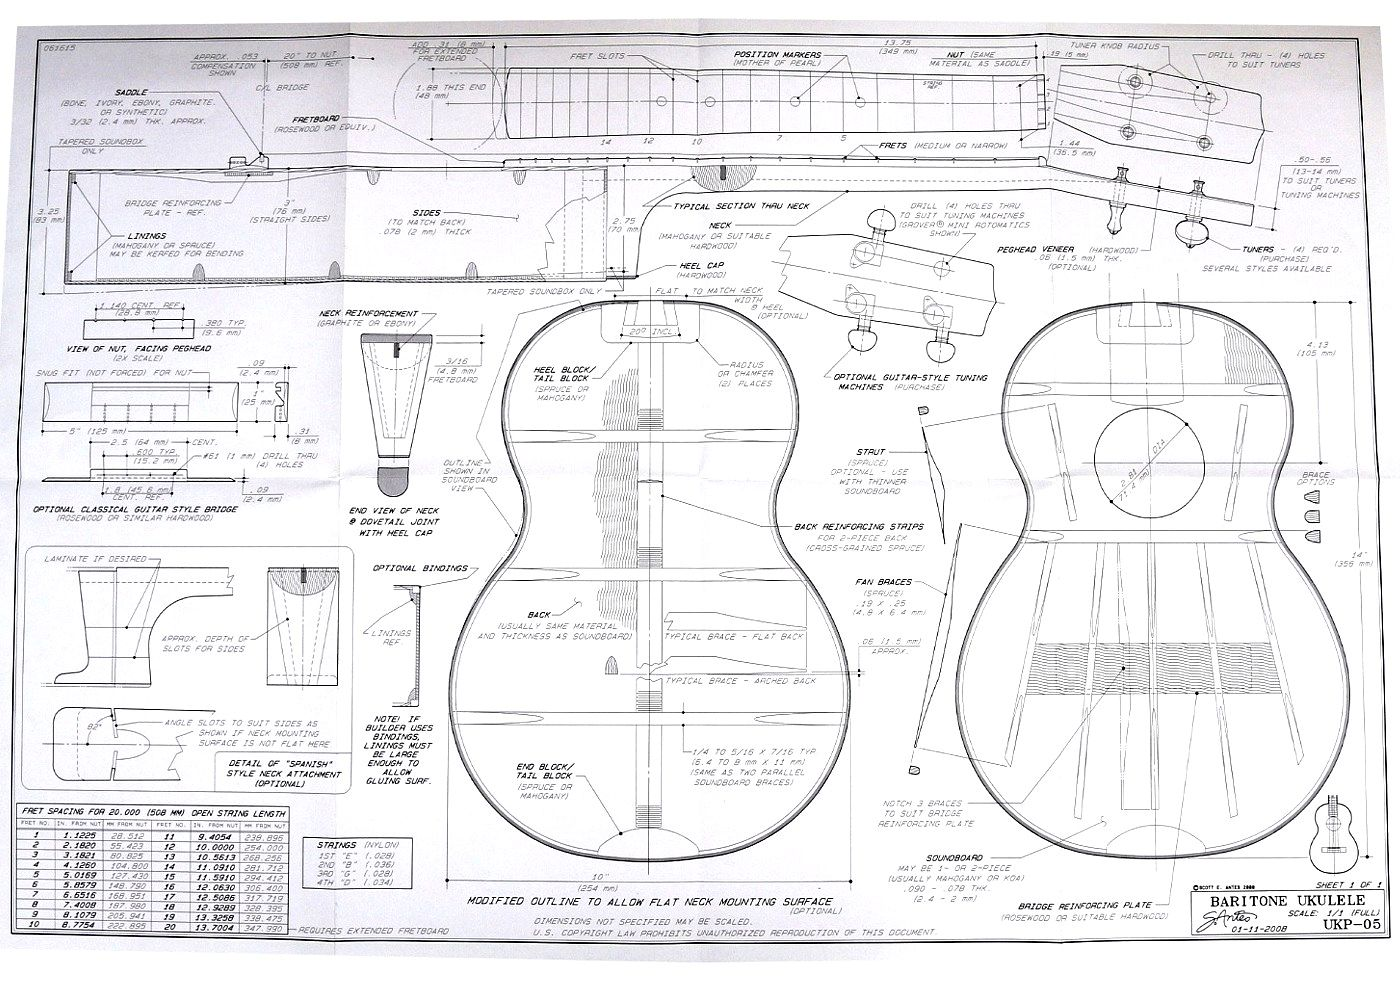 Full size blueprint for baritone ukulele 20 inch scale full size blueprint for baritone ukulele 20 inch scale by scott antes with construction options and notes malvernweather Gallery